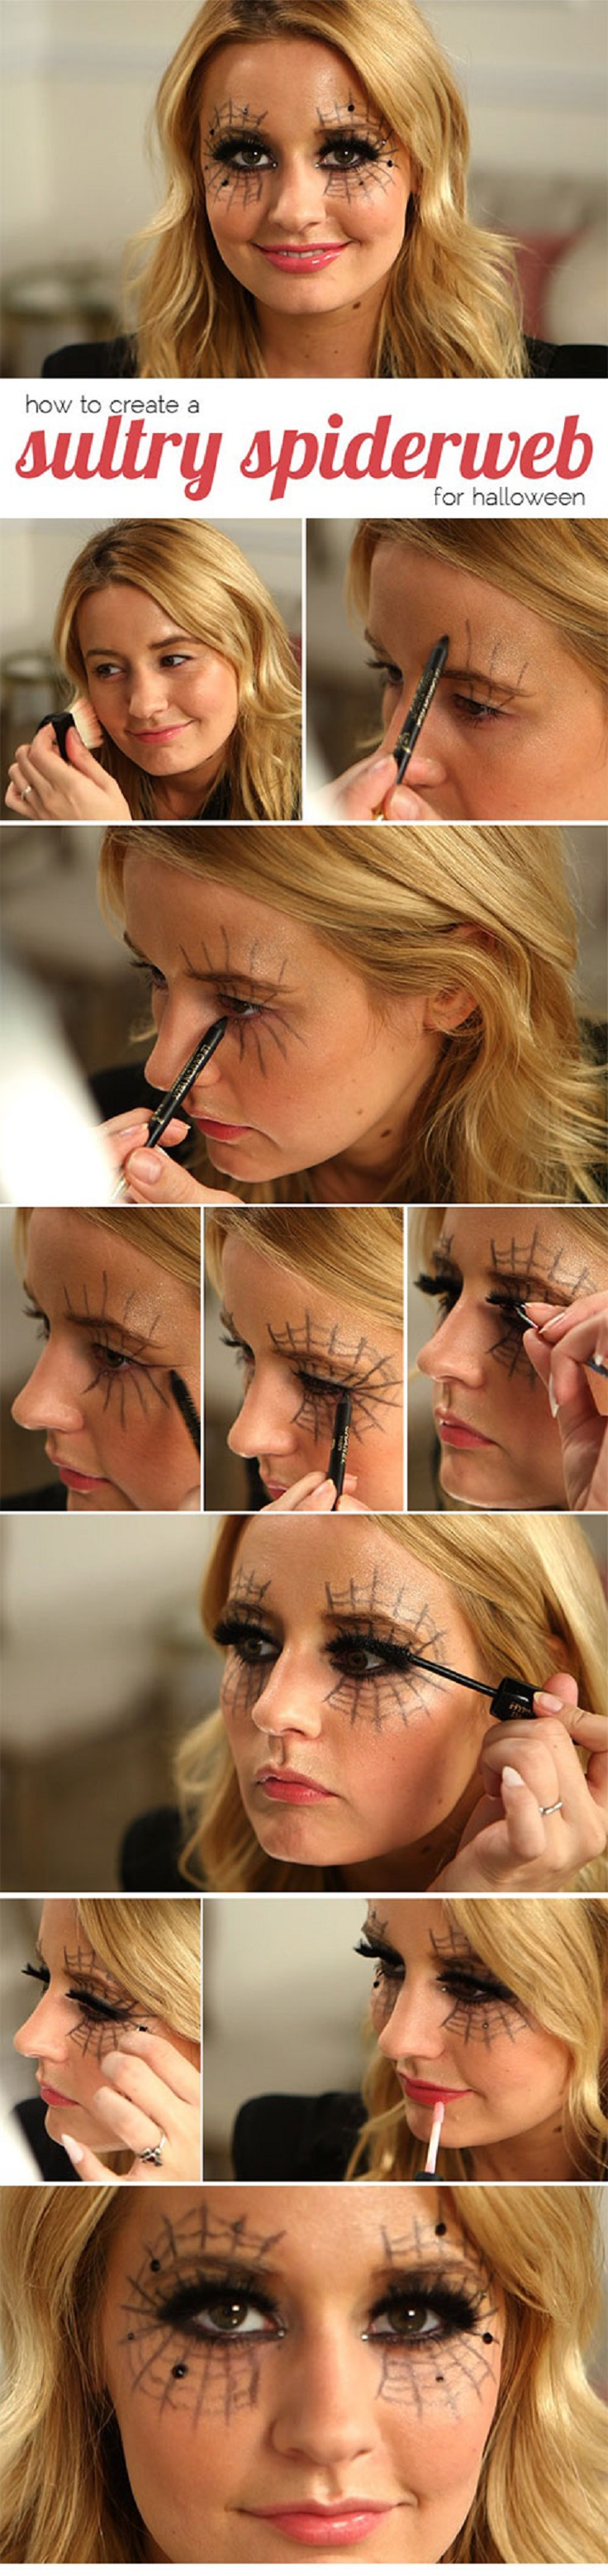 sultry-spiderweb-makeup